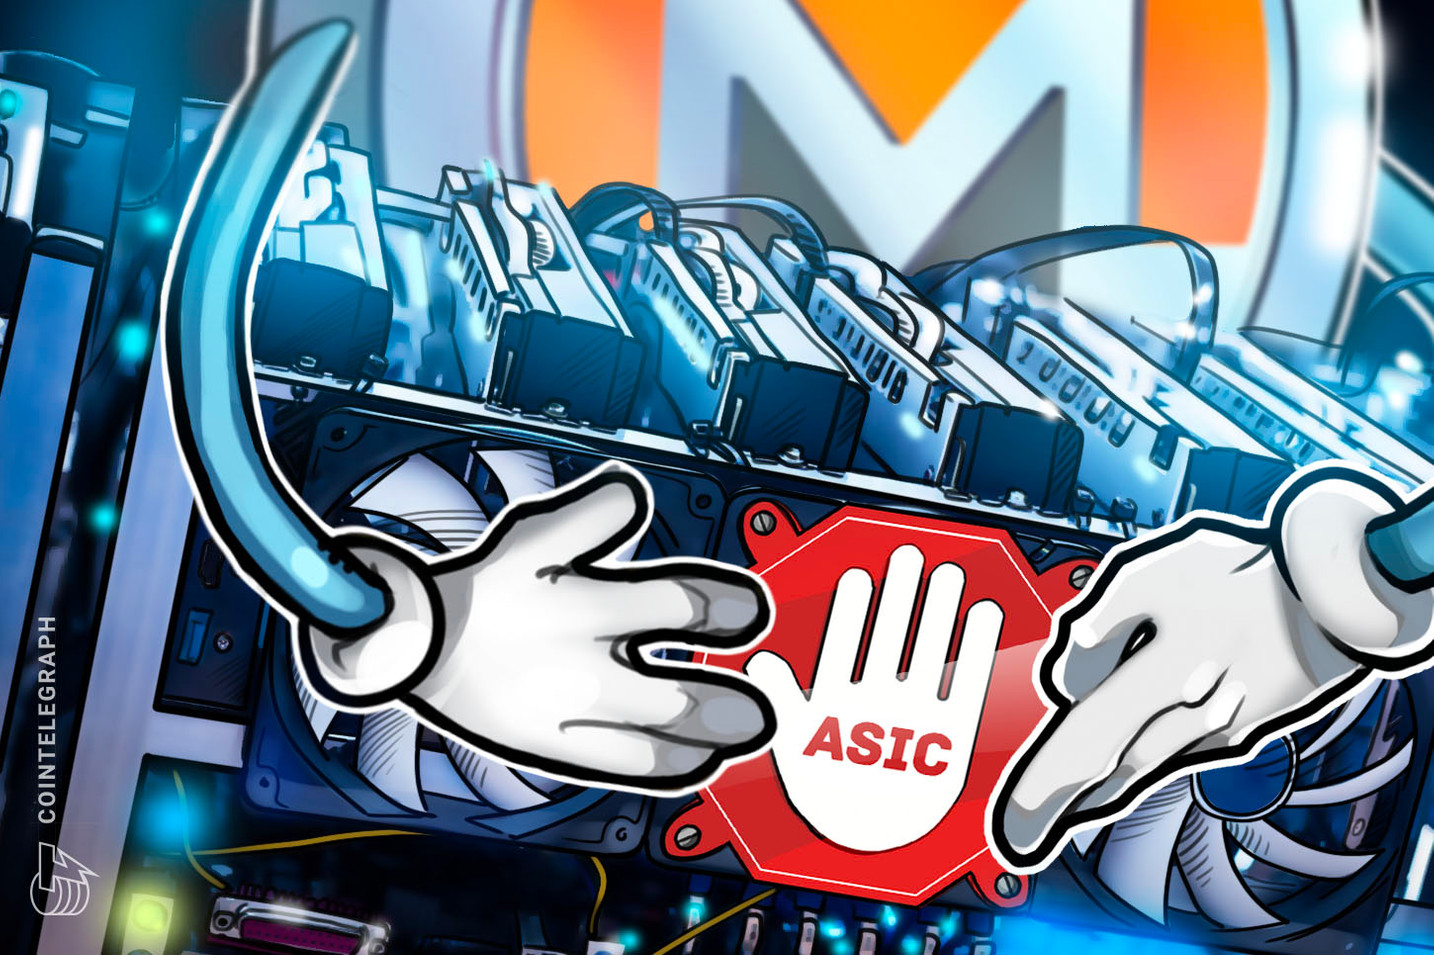 Decentralization First: Privacy Coin Monero Cuts Out ASIC Miners to Stay Independent